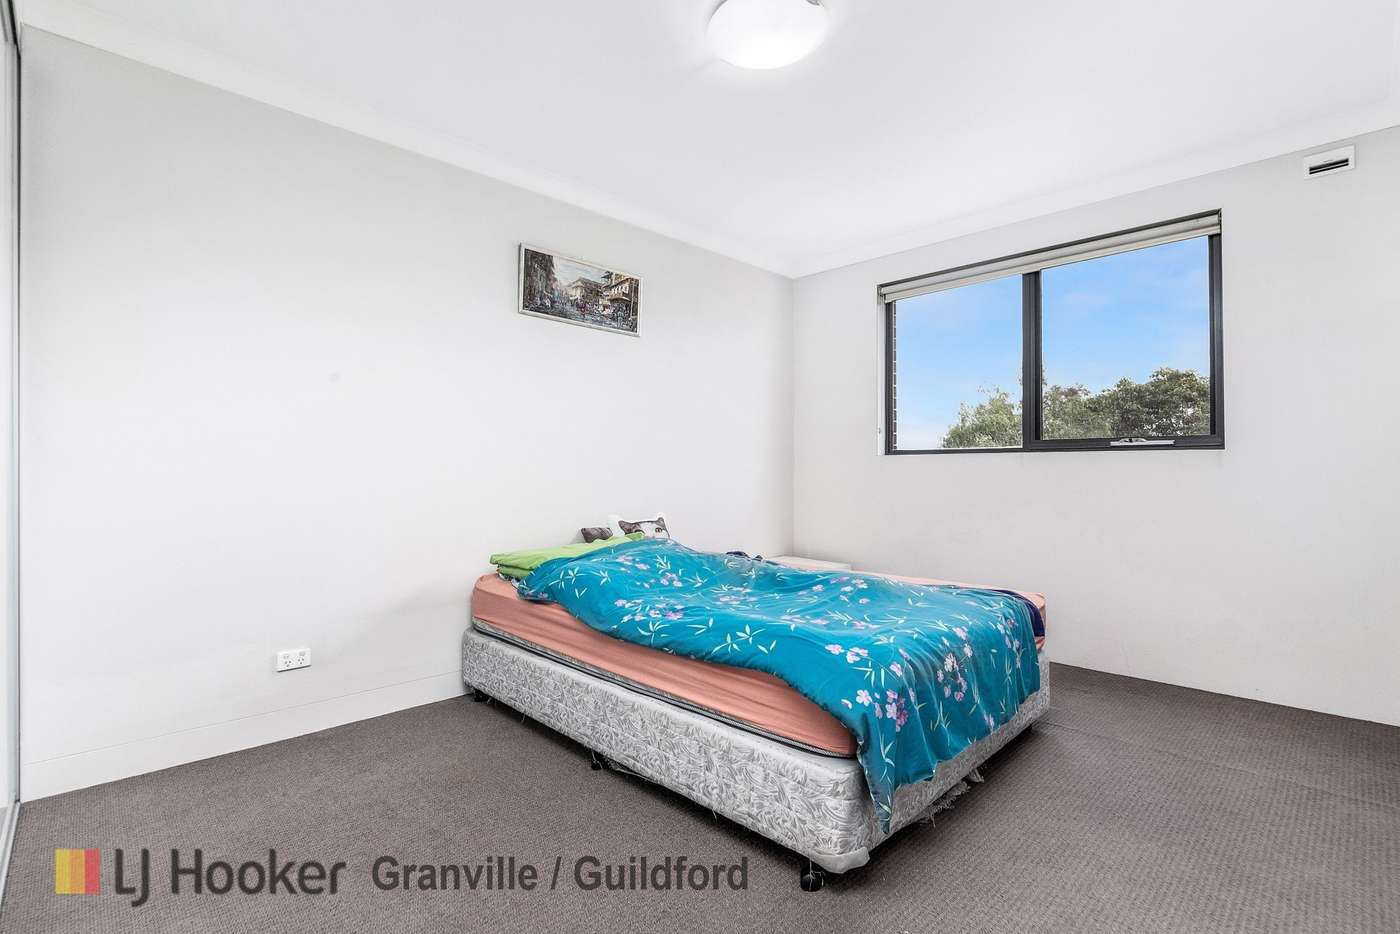 Fifth view of Homely unit listing, 17/121-127 Railway Parade, Granville NSW 2142